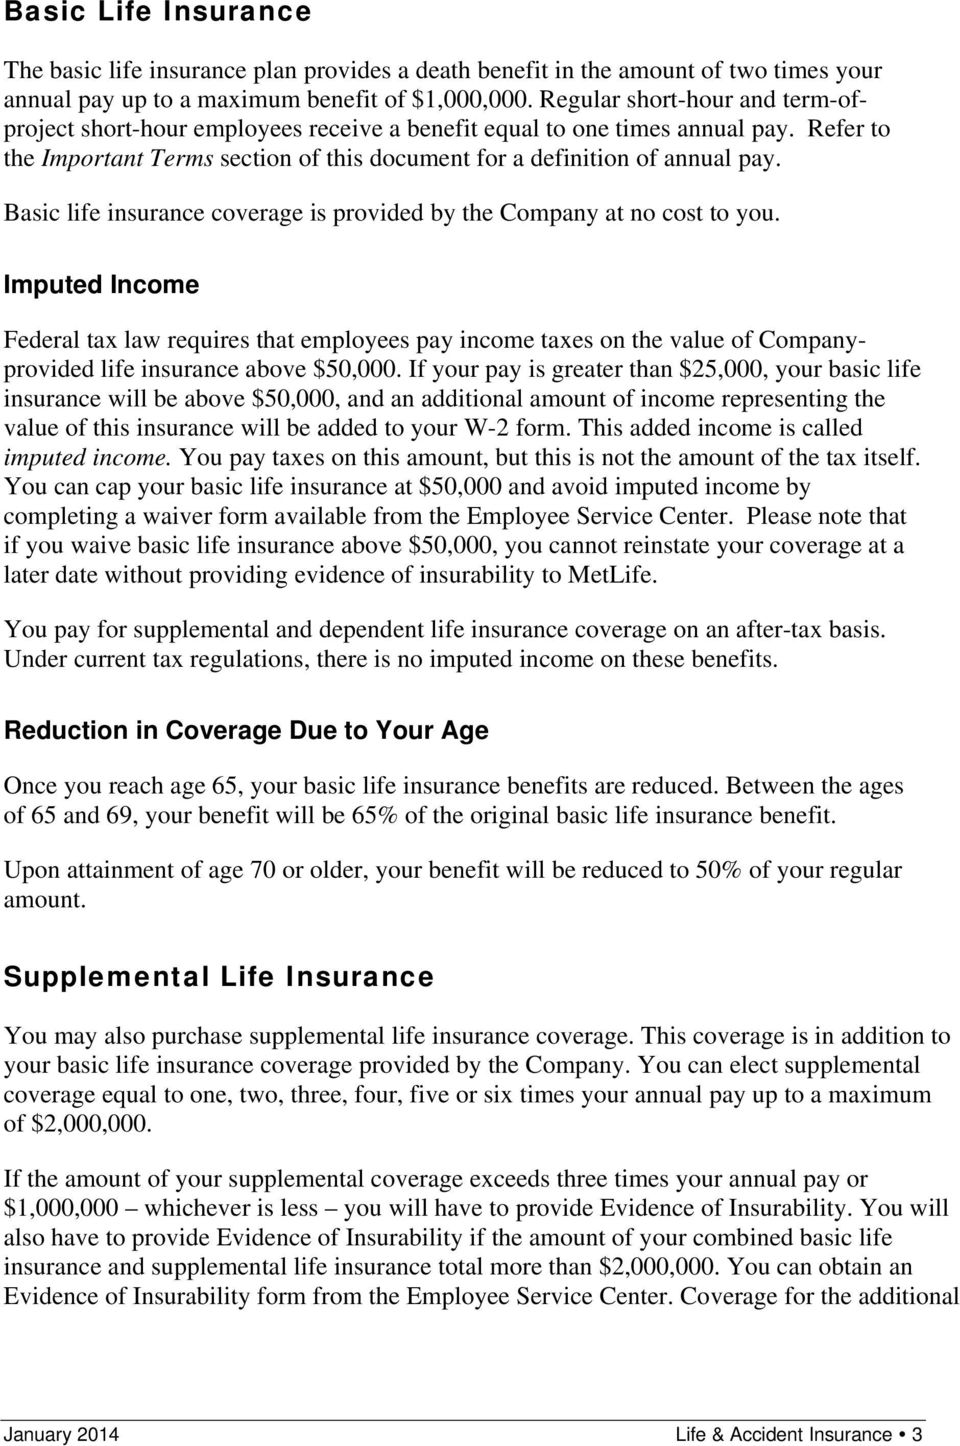 Basic life insurance coverage is provided by the Company at no cost to you.